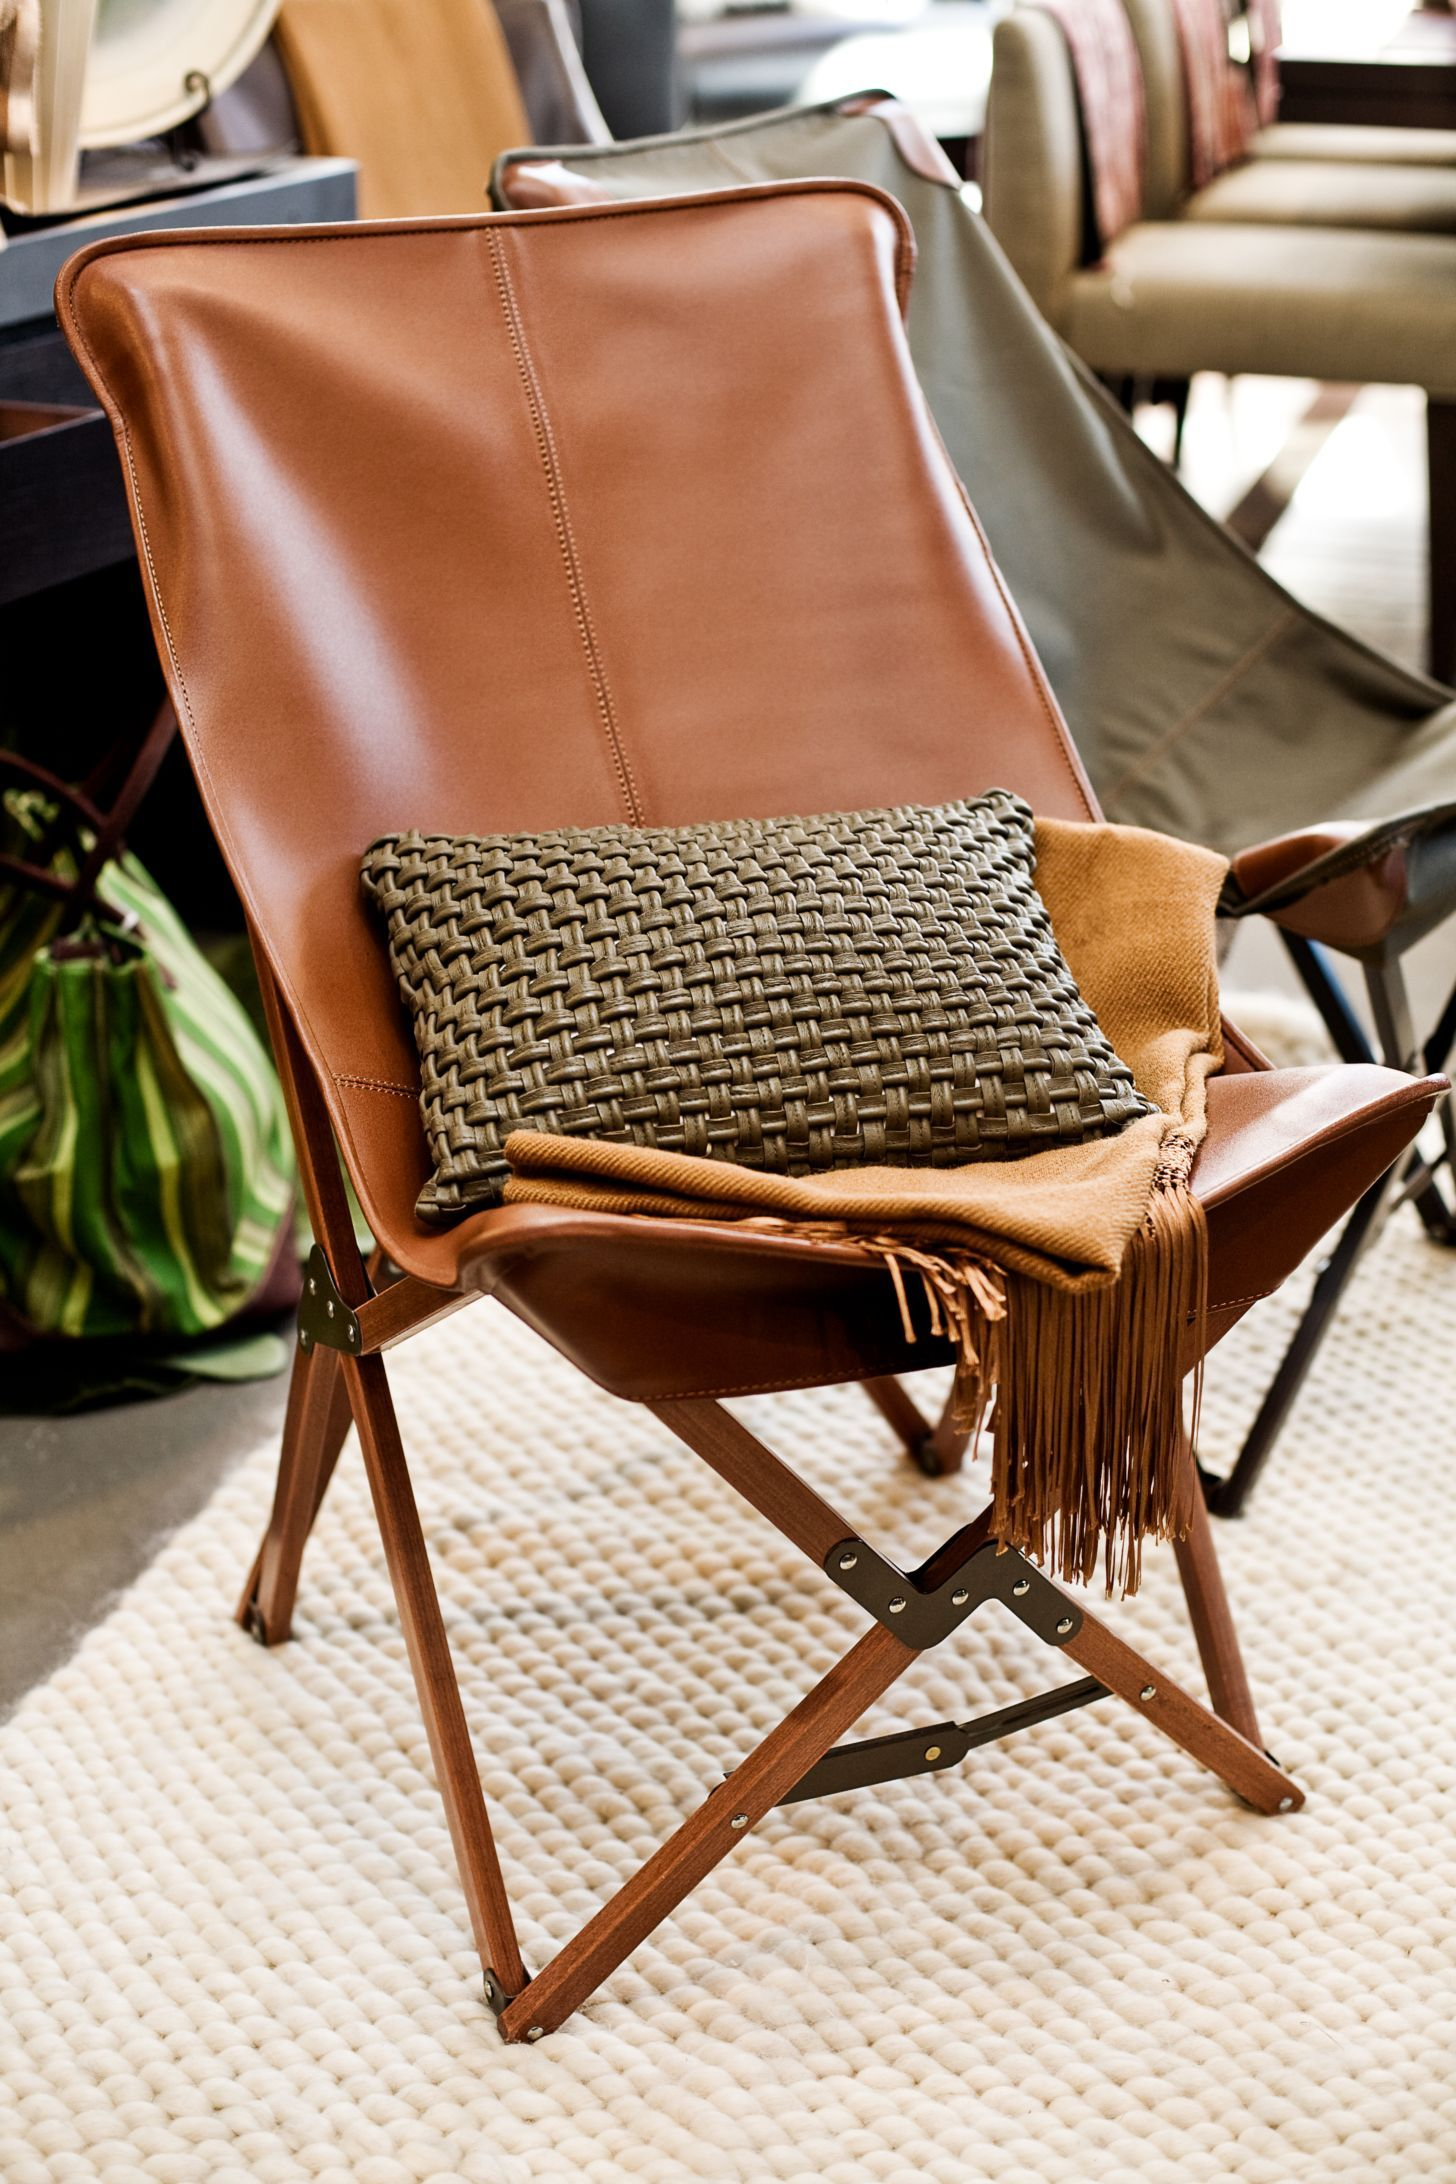 Collapsible U0027Tripolinau0027 Chair, Inspiration For The Famous BKF U0027butterflyu0027  ...